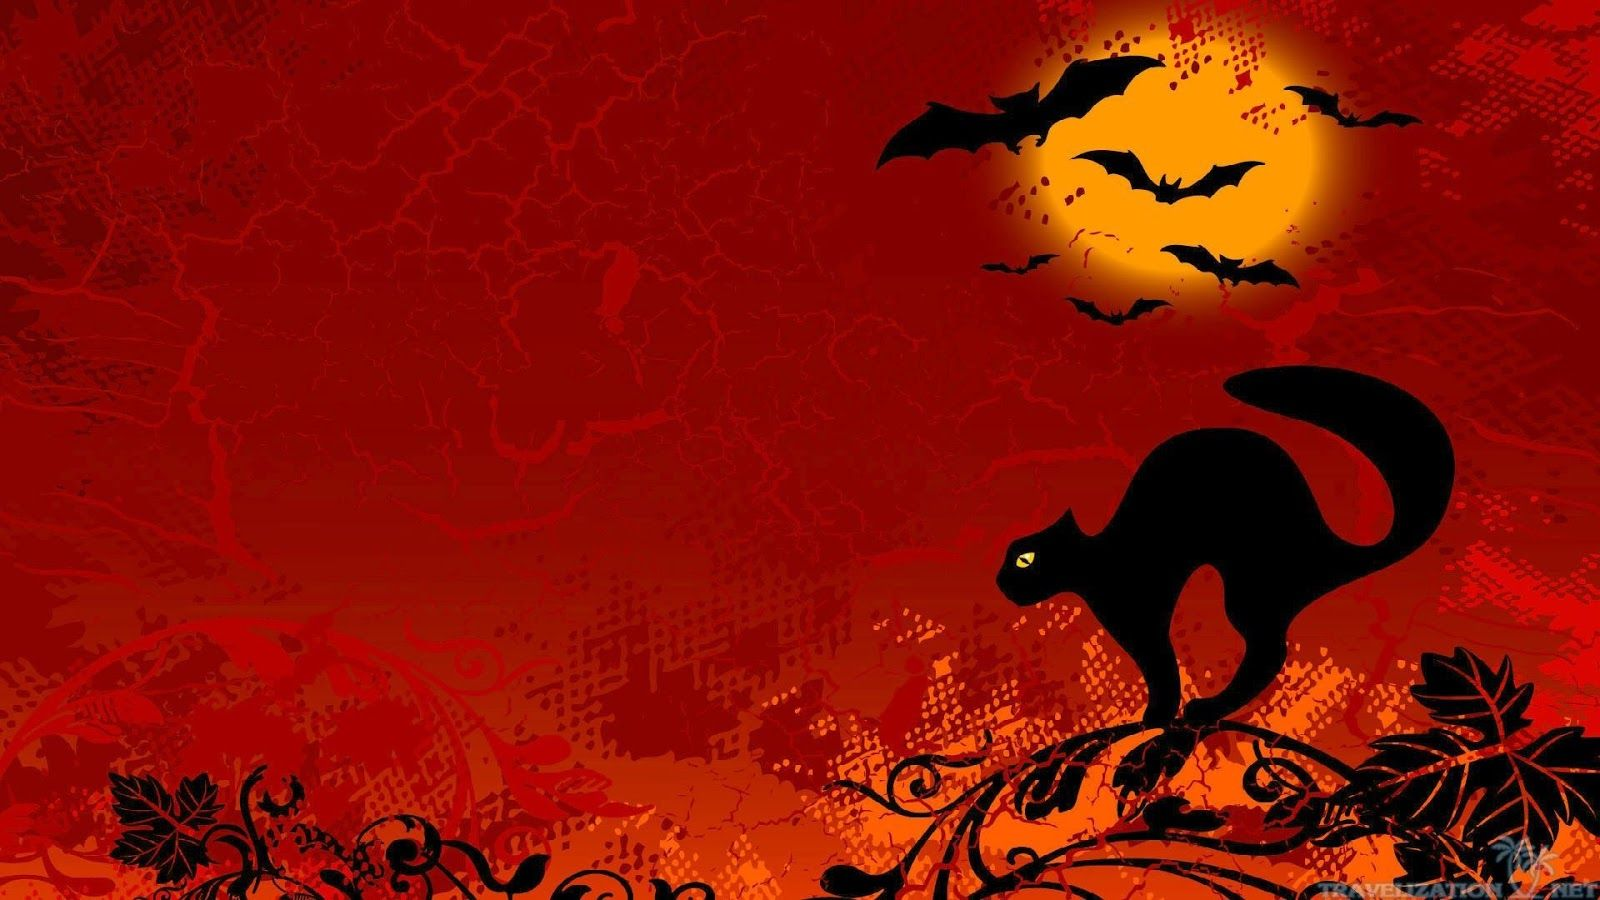 1080p Hd Halloween Cat Wallpaper High Quality Desktop Iphone And Android Background And Wallpaper Animals W Halloween Cat Halloween Graphics Cat Wallpaper